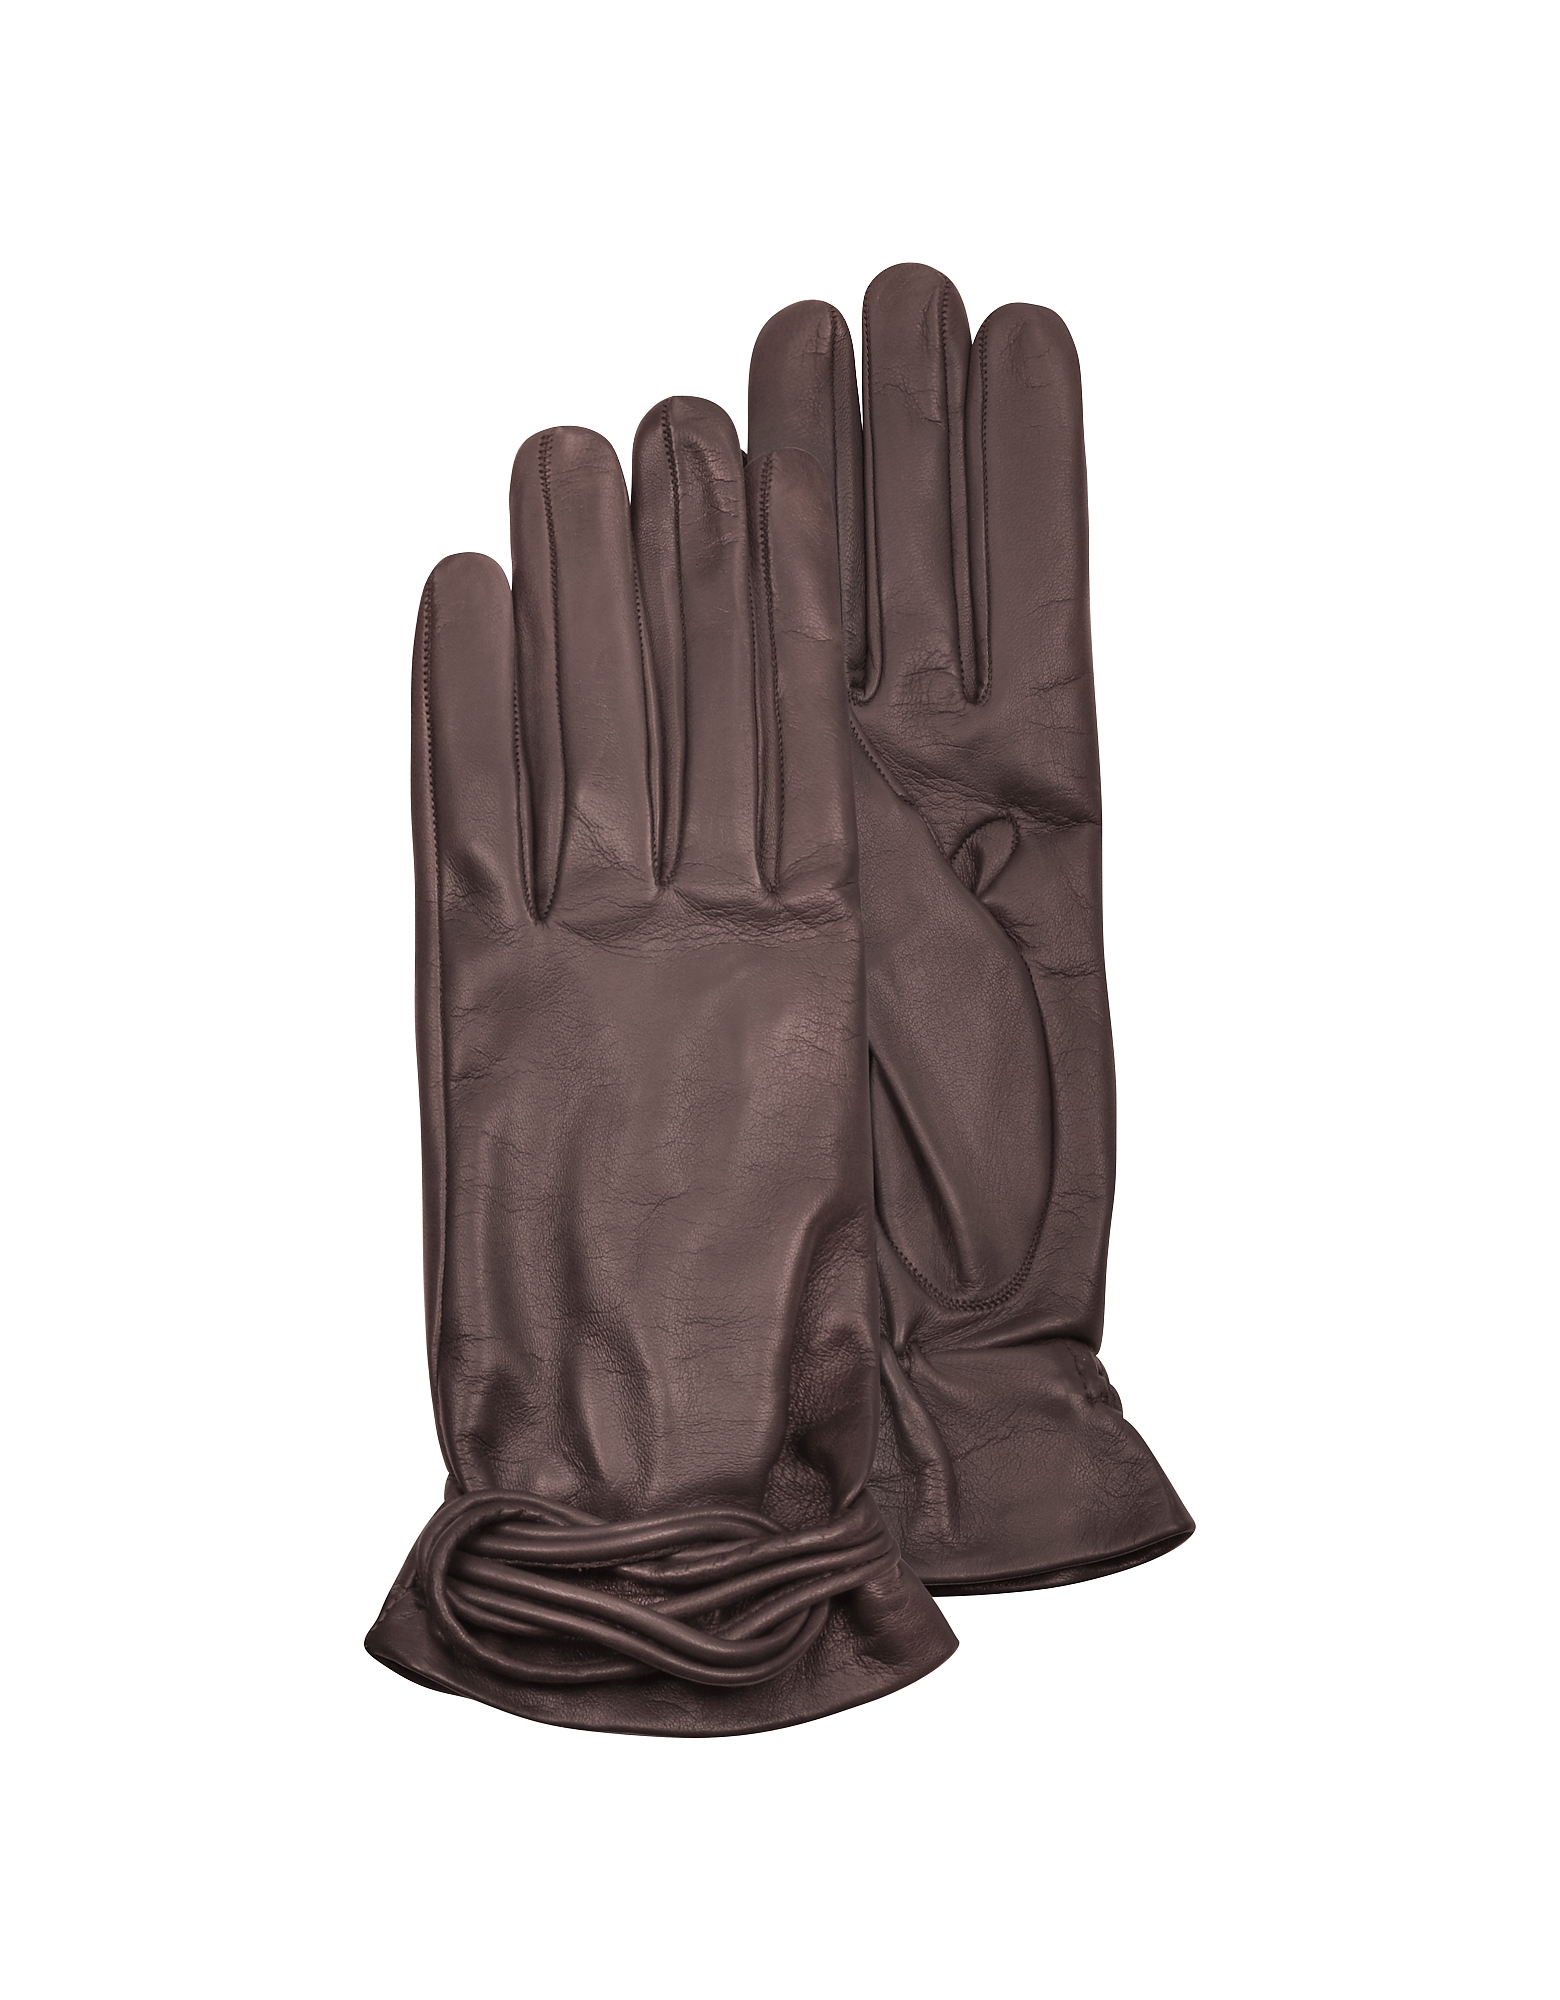 Forzieri Women's Gloves, Women's Brown Leather Gloves w/Knot